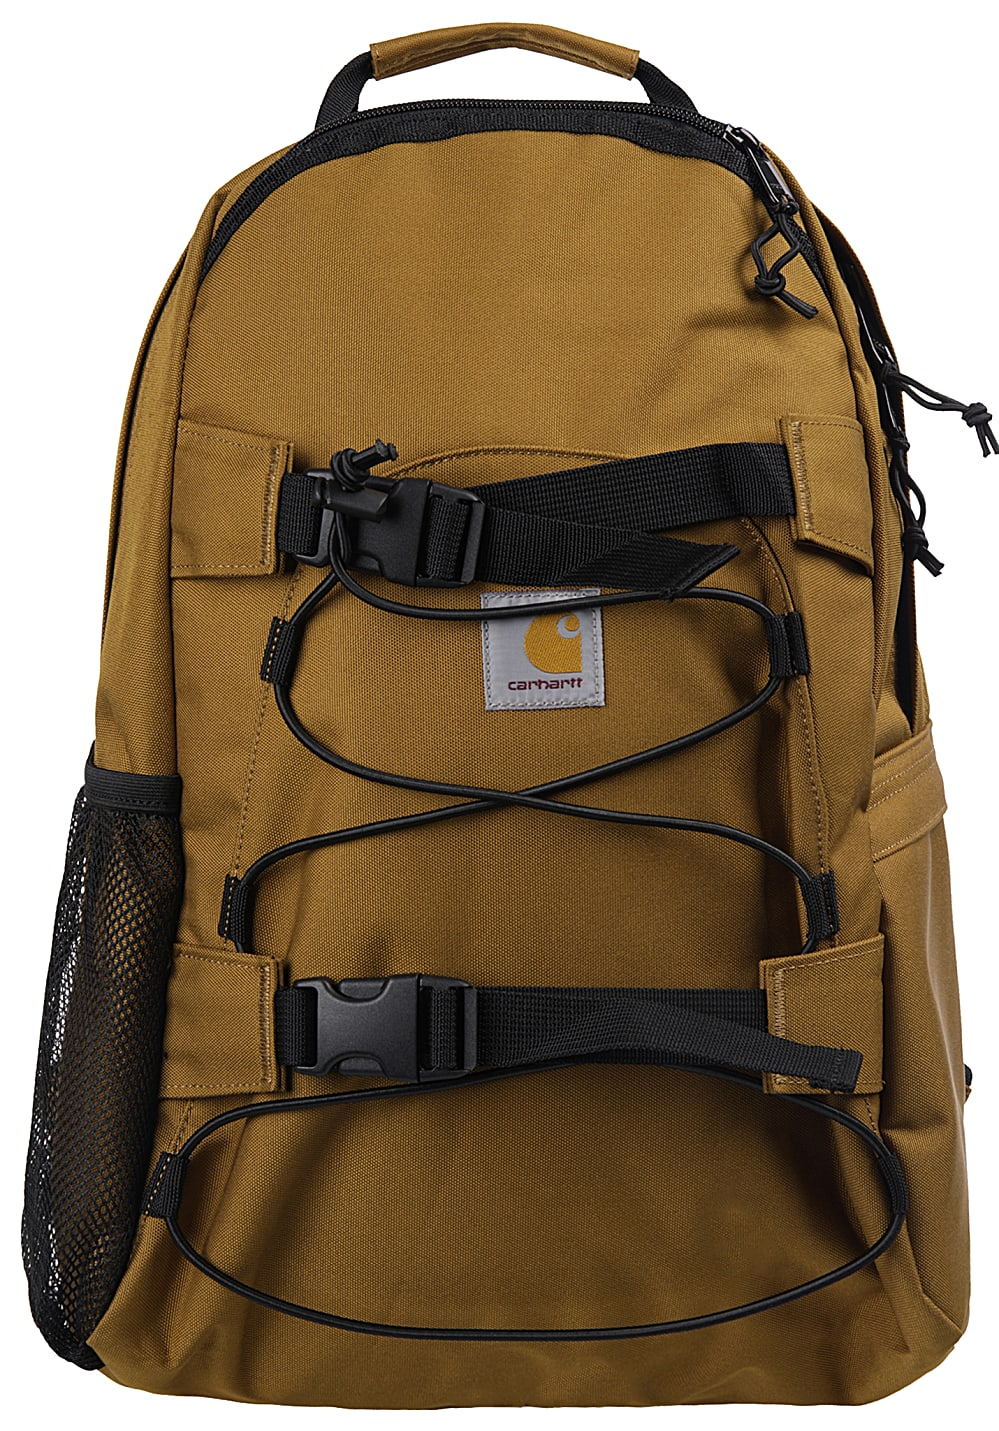 carhartt wip kickflip sac dos pour homme marron planet sports. Black Bedroom Furniture Sets. Home Design Ideas